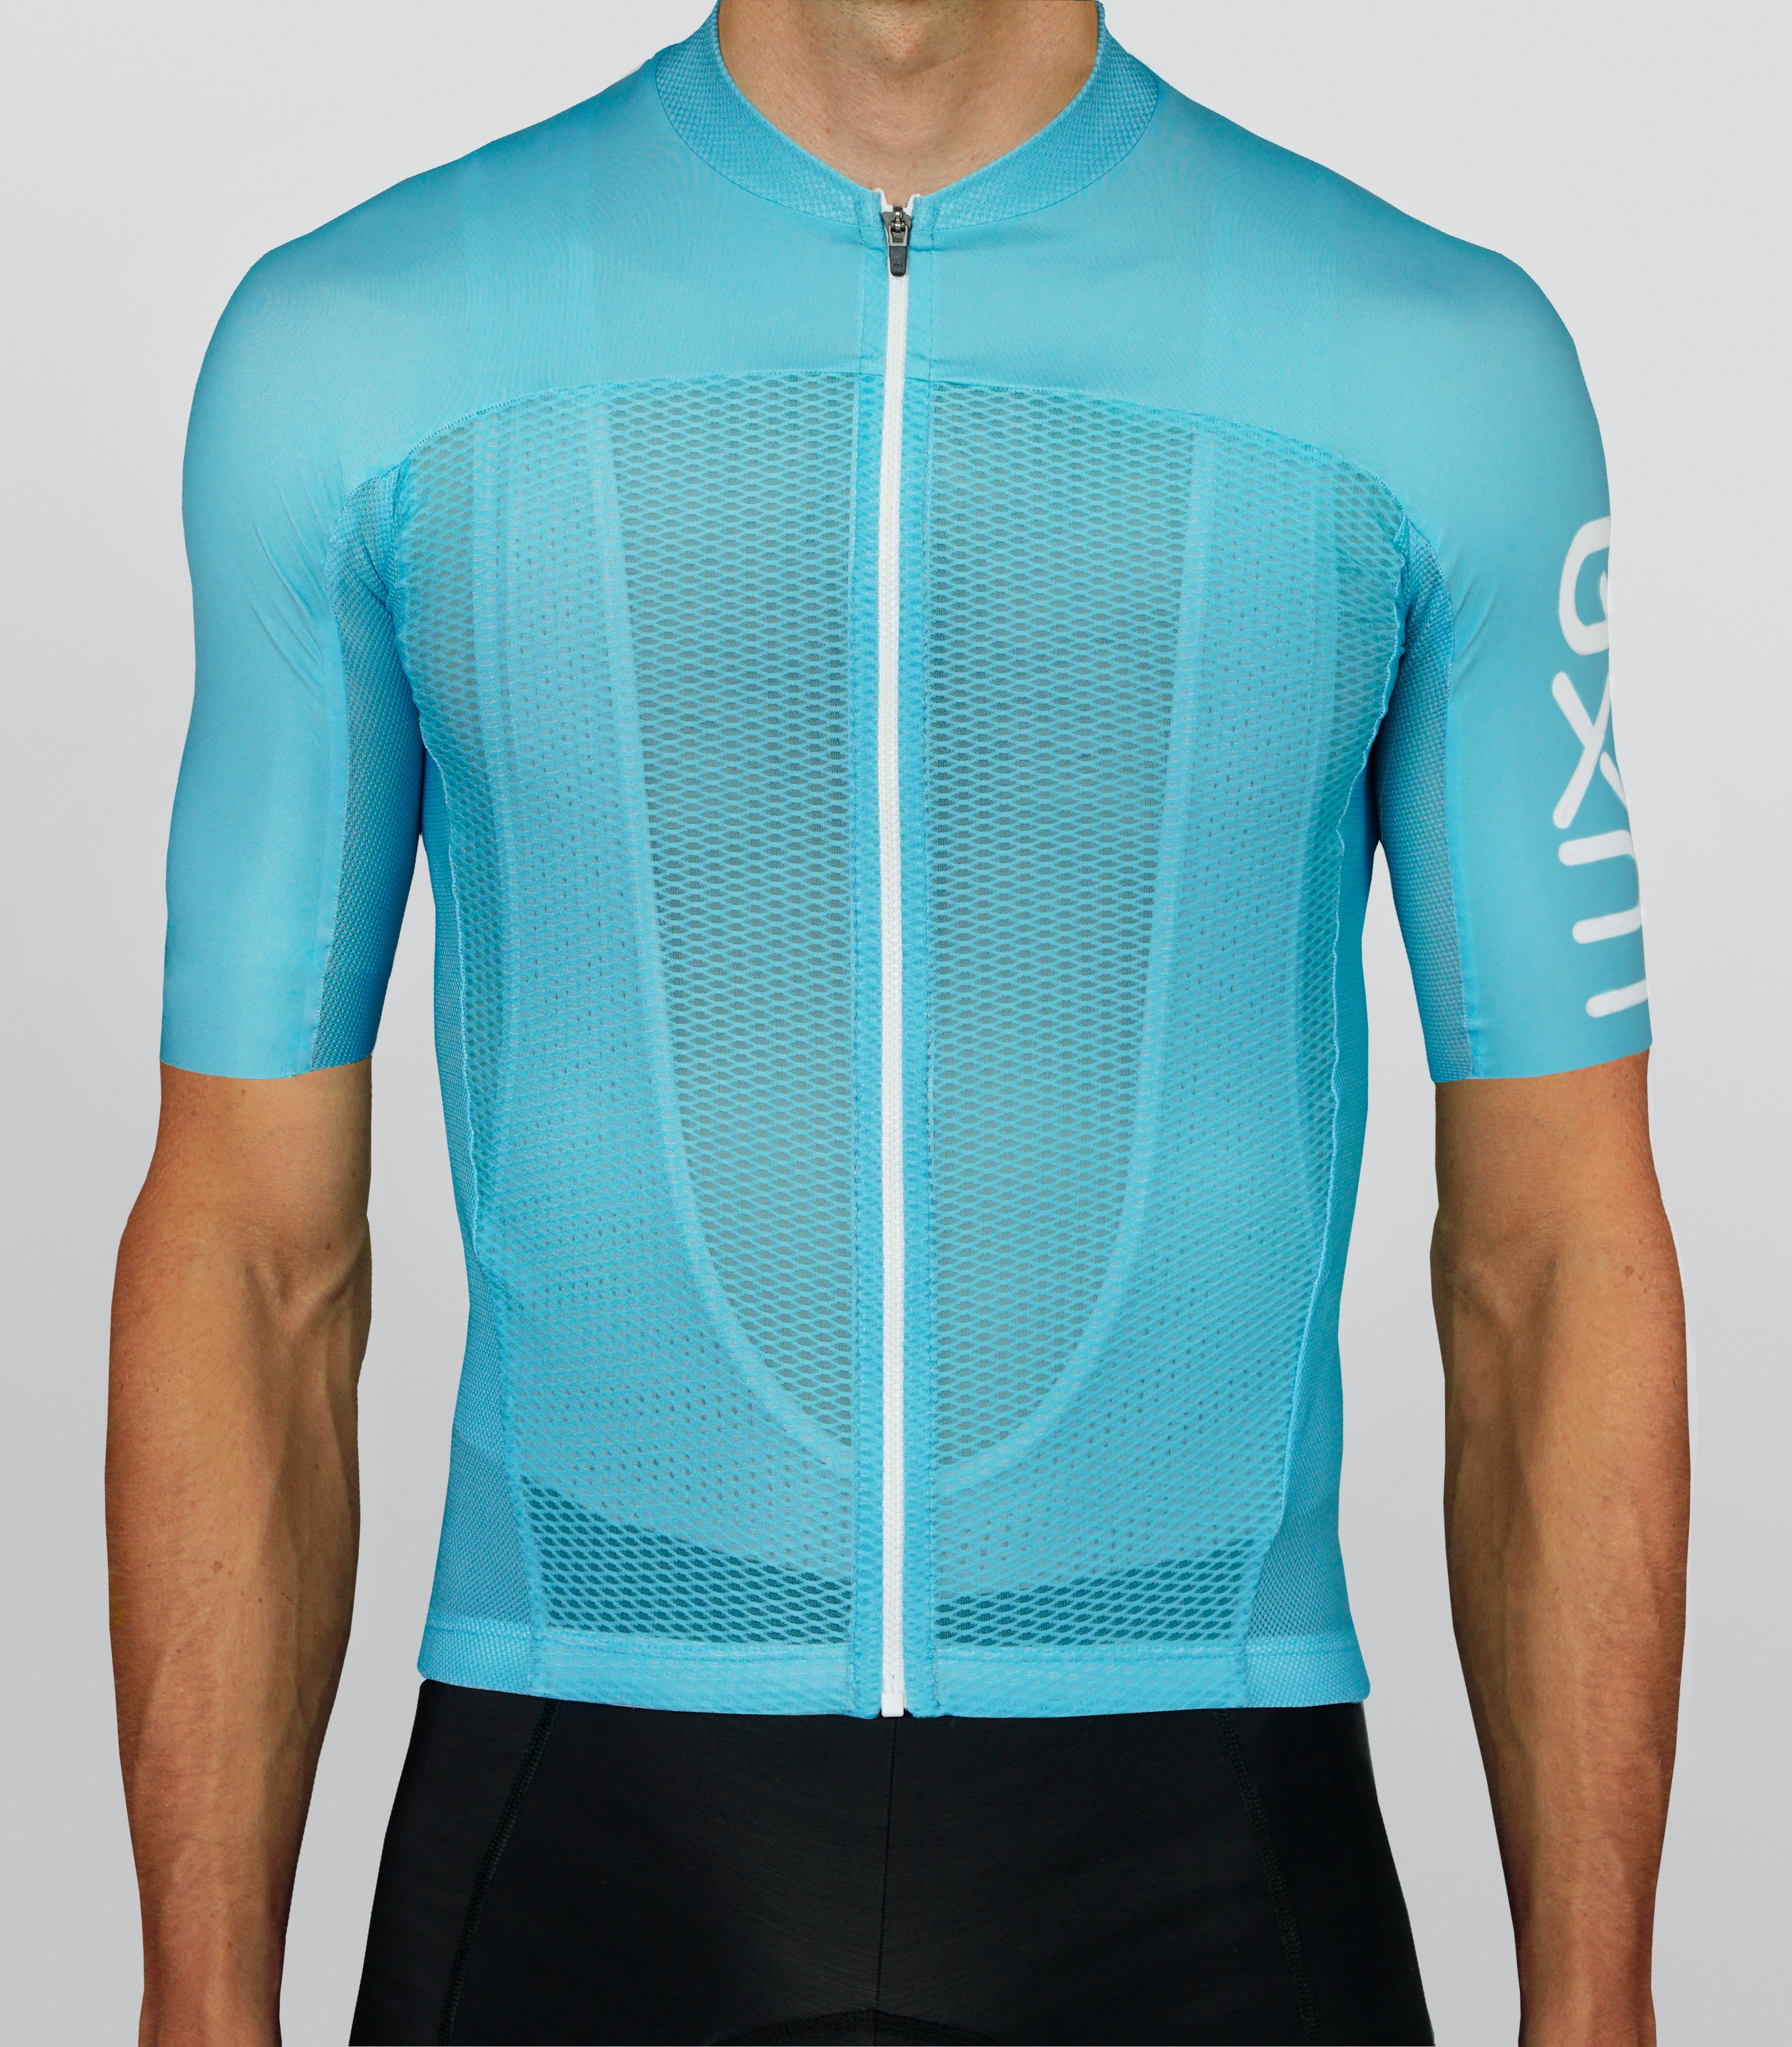 96c48cb7e Summer Sky Jersey by Luxa. Made of innovative mesh fabrics. Designed  specifically for cycling on hot days. Solutions used in professional  peloton during ...